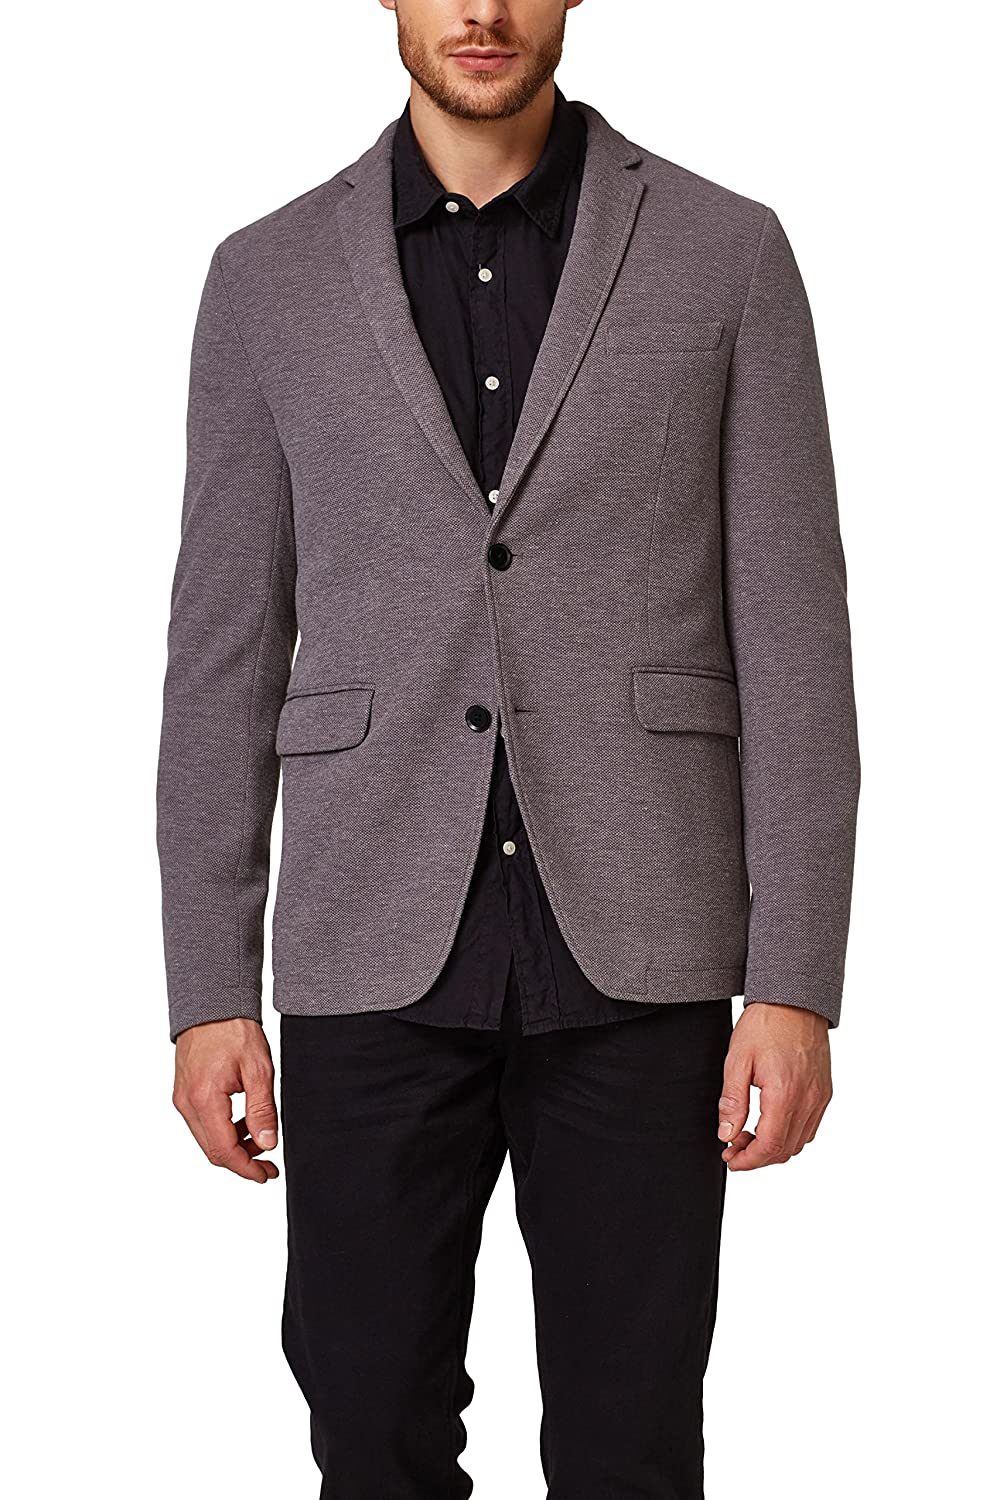 ESPRIT Collection Chaqueta de Traje para Hombre